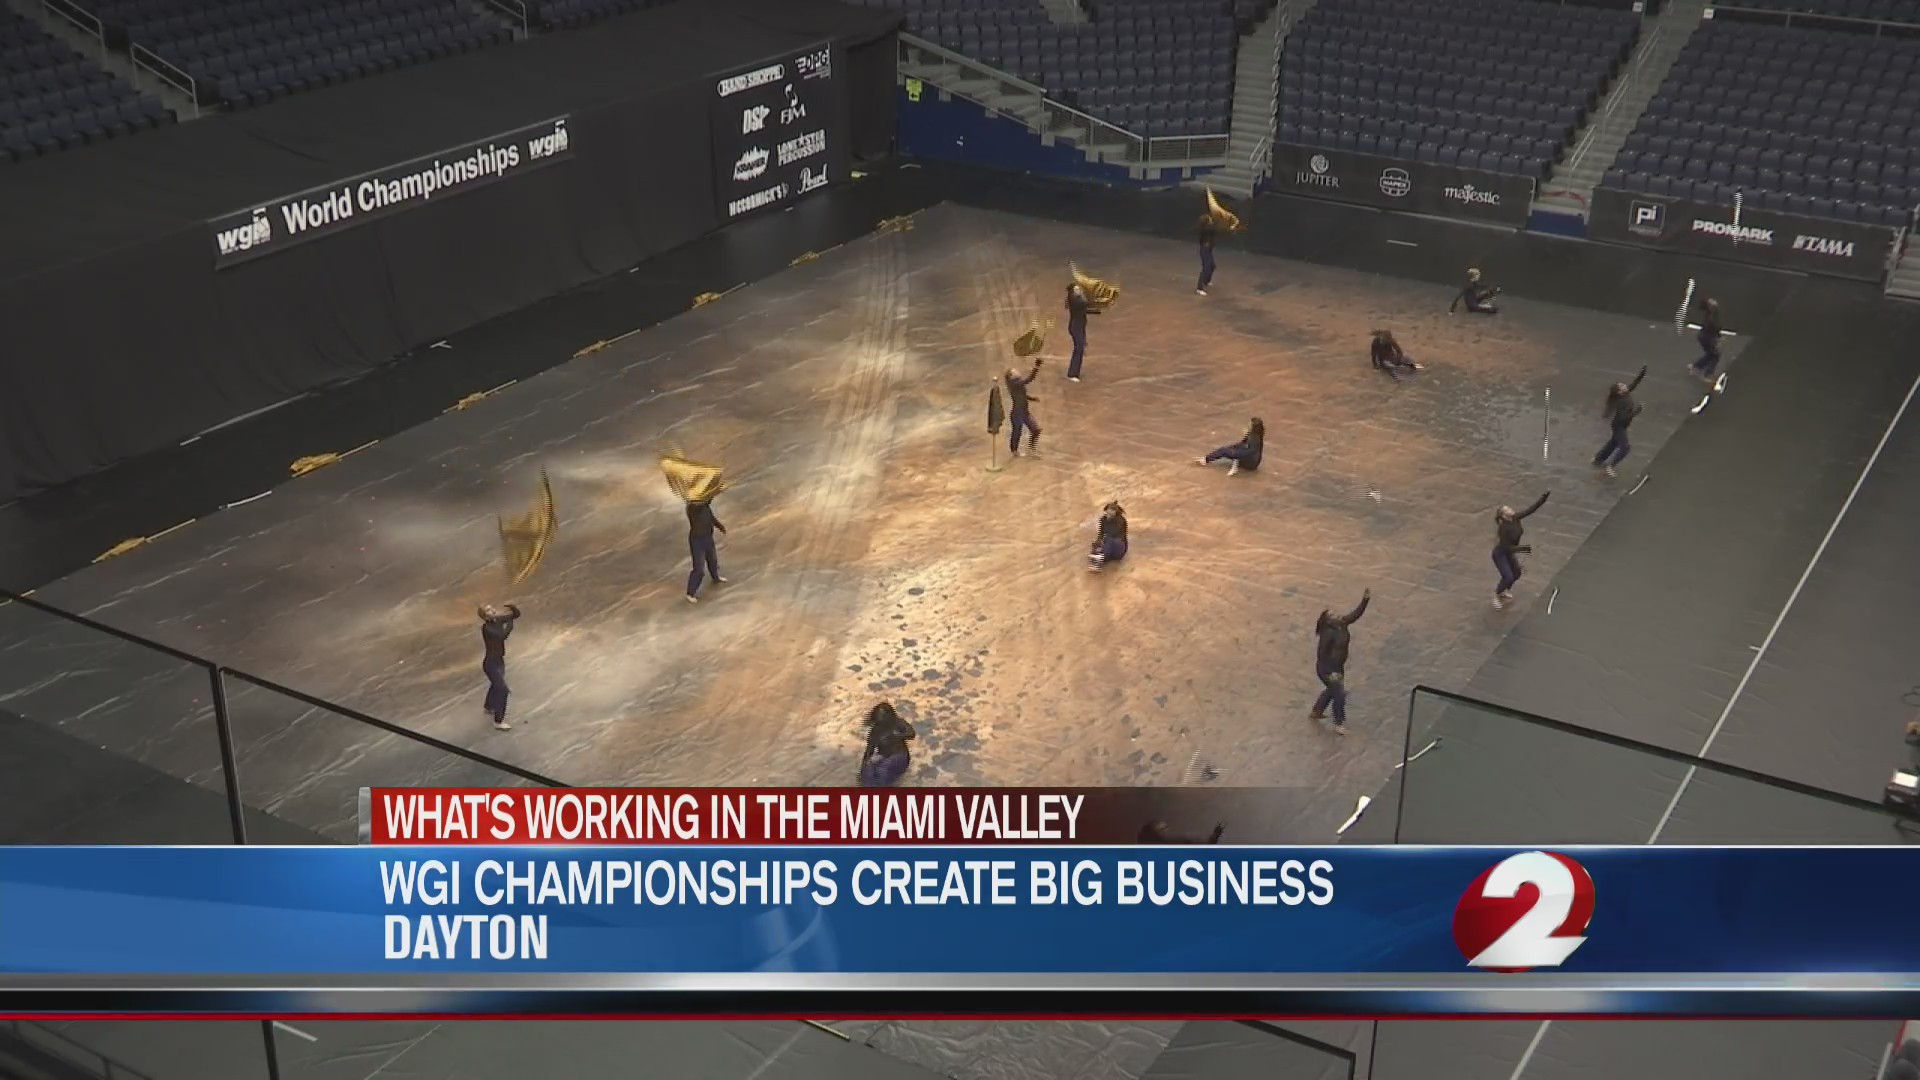 WGI championships create big business